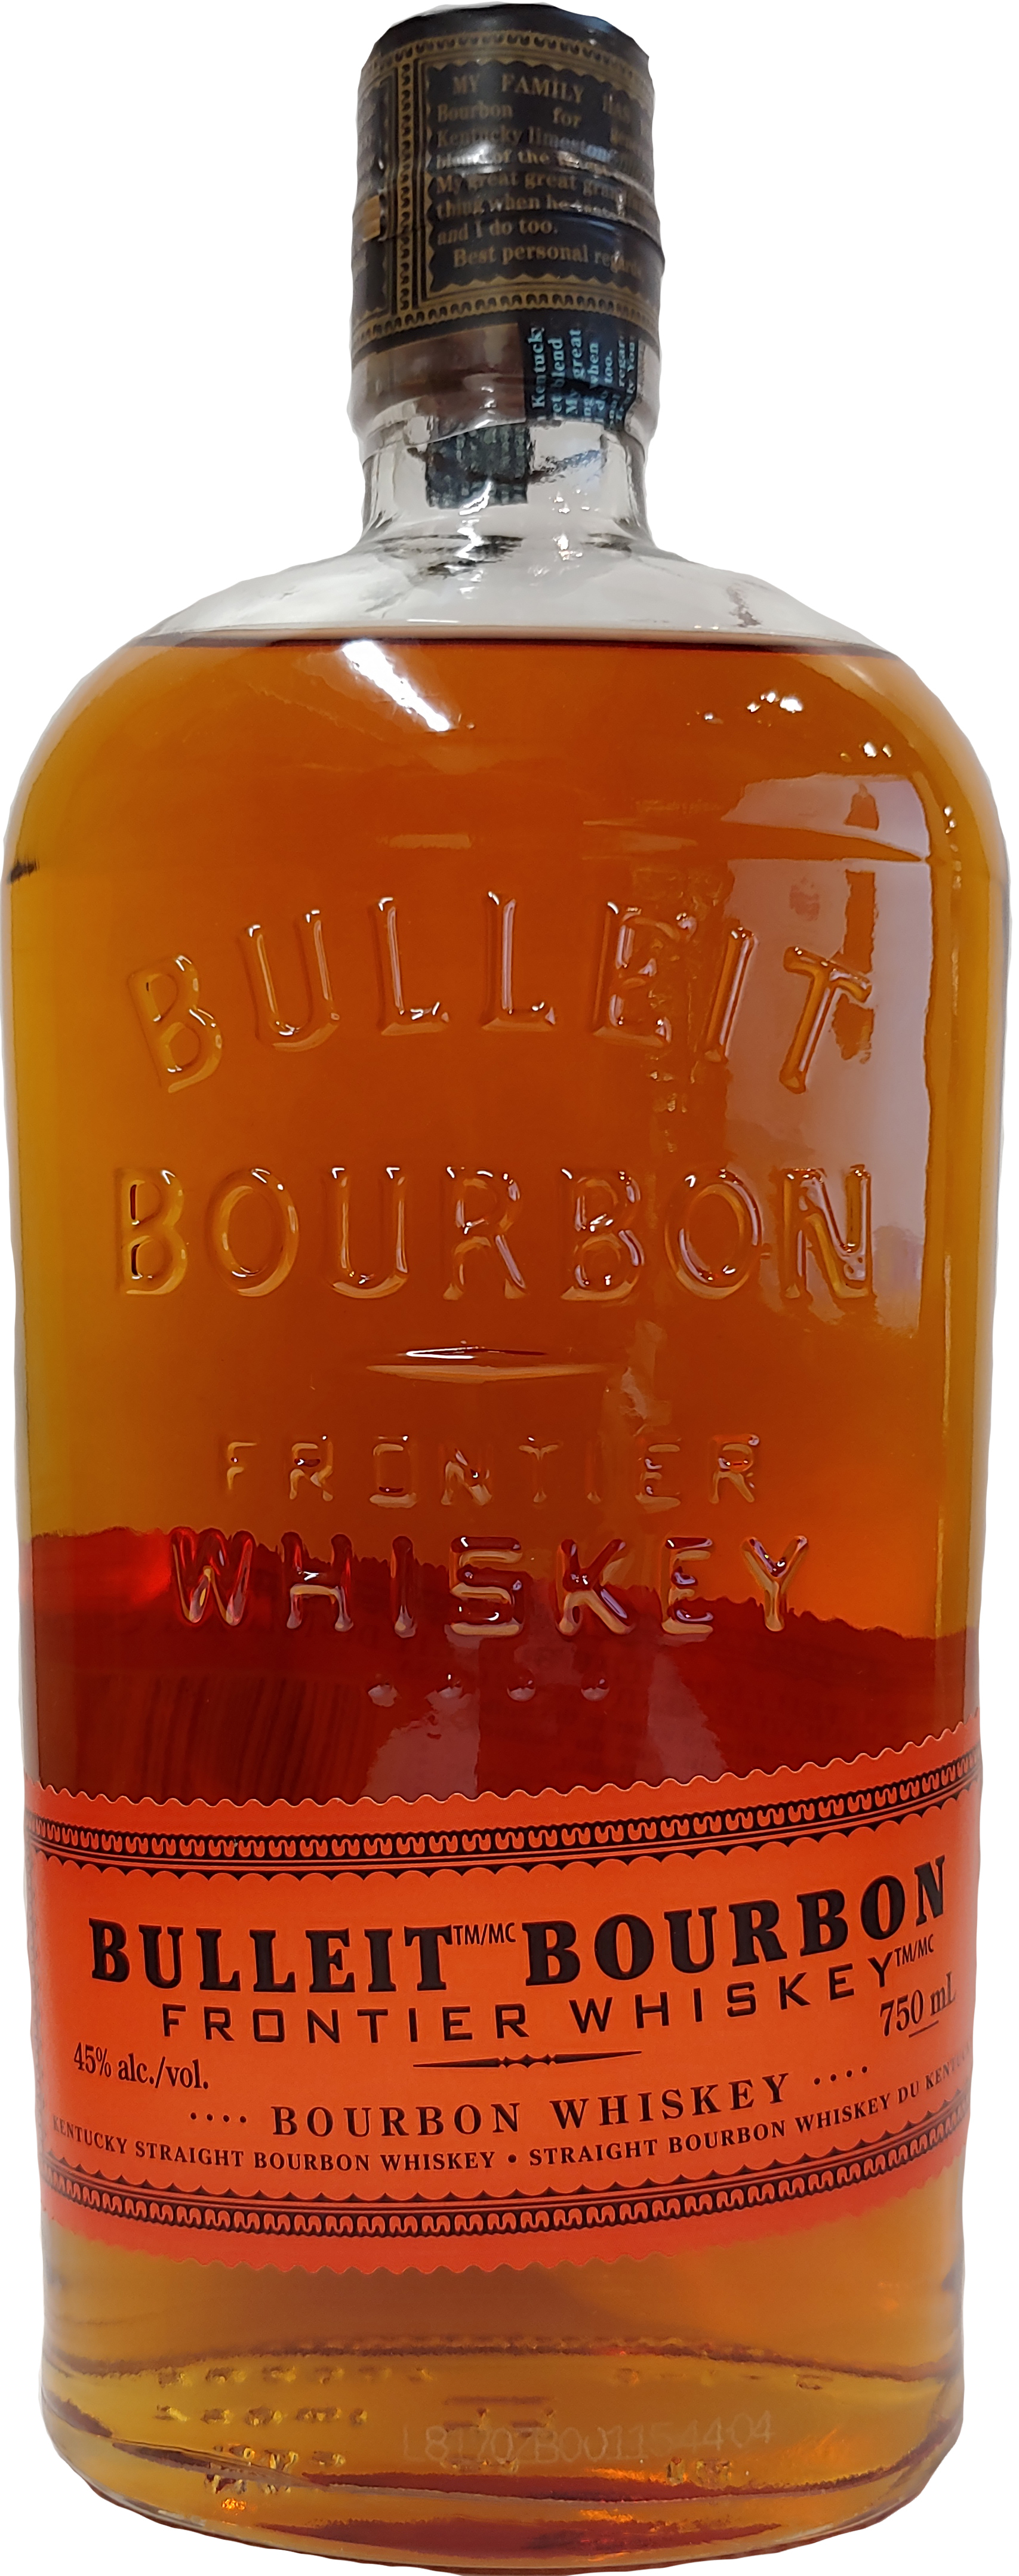 Bulleit Frontier Bourbon Whiskey